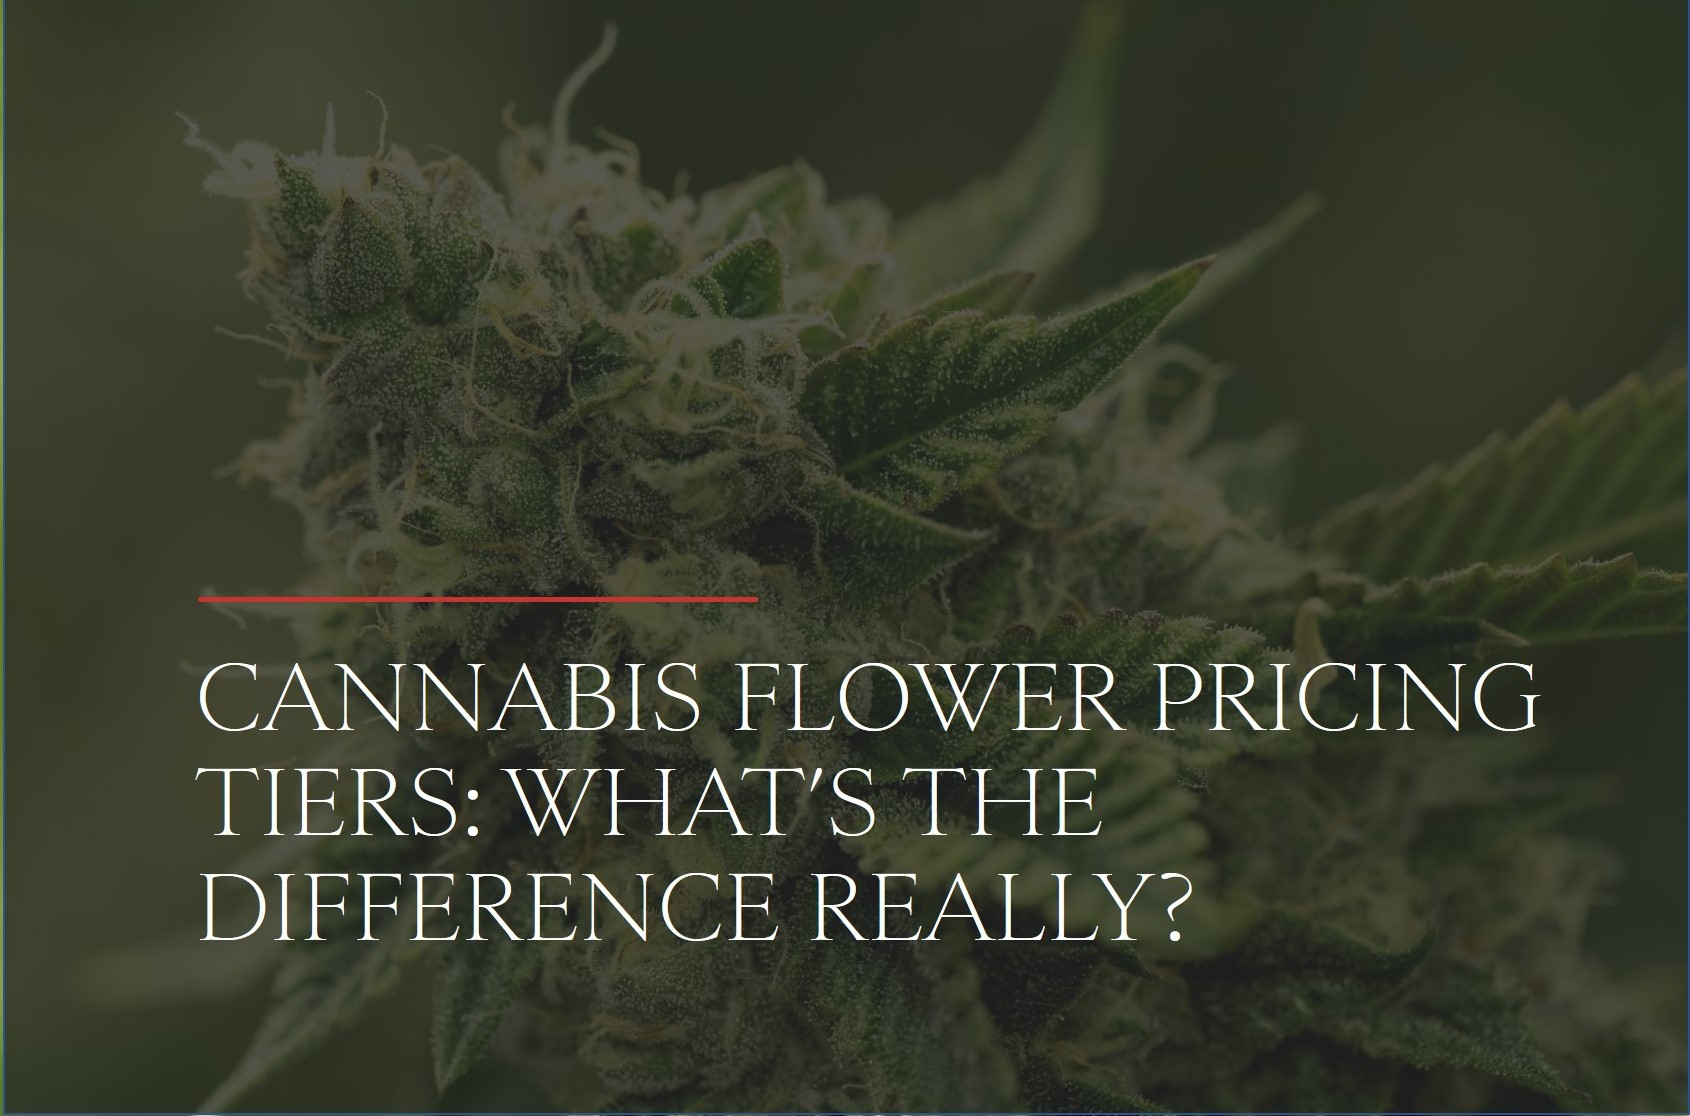 Cannabis Flower Pricing Tiers: What's the Difference Really?